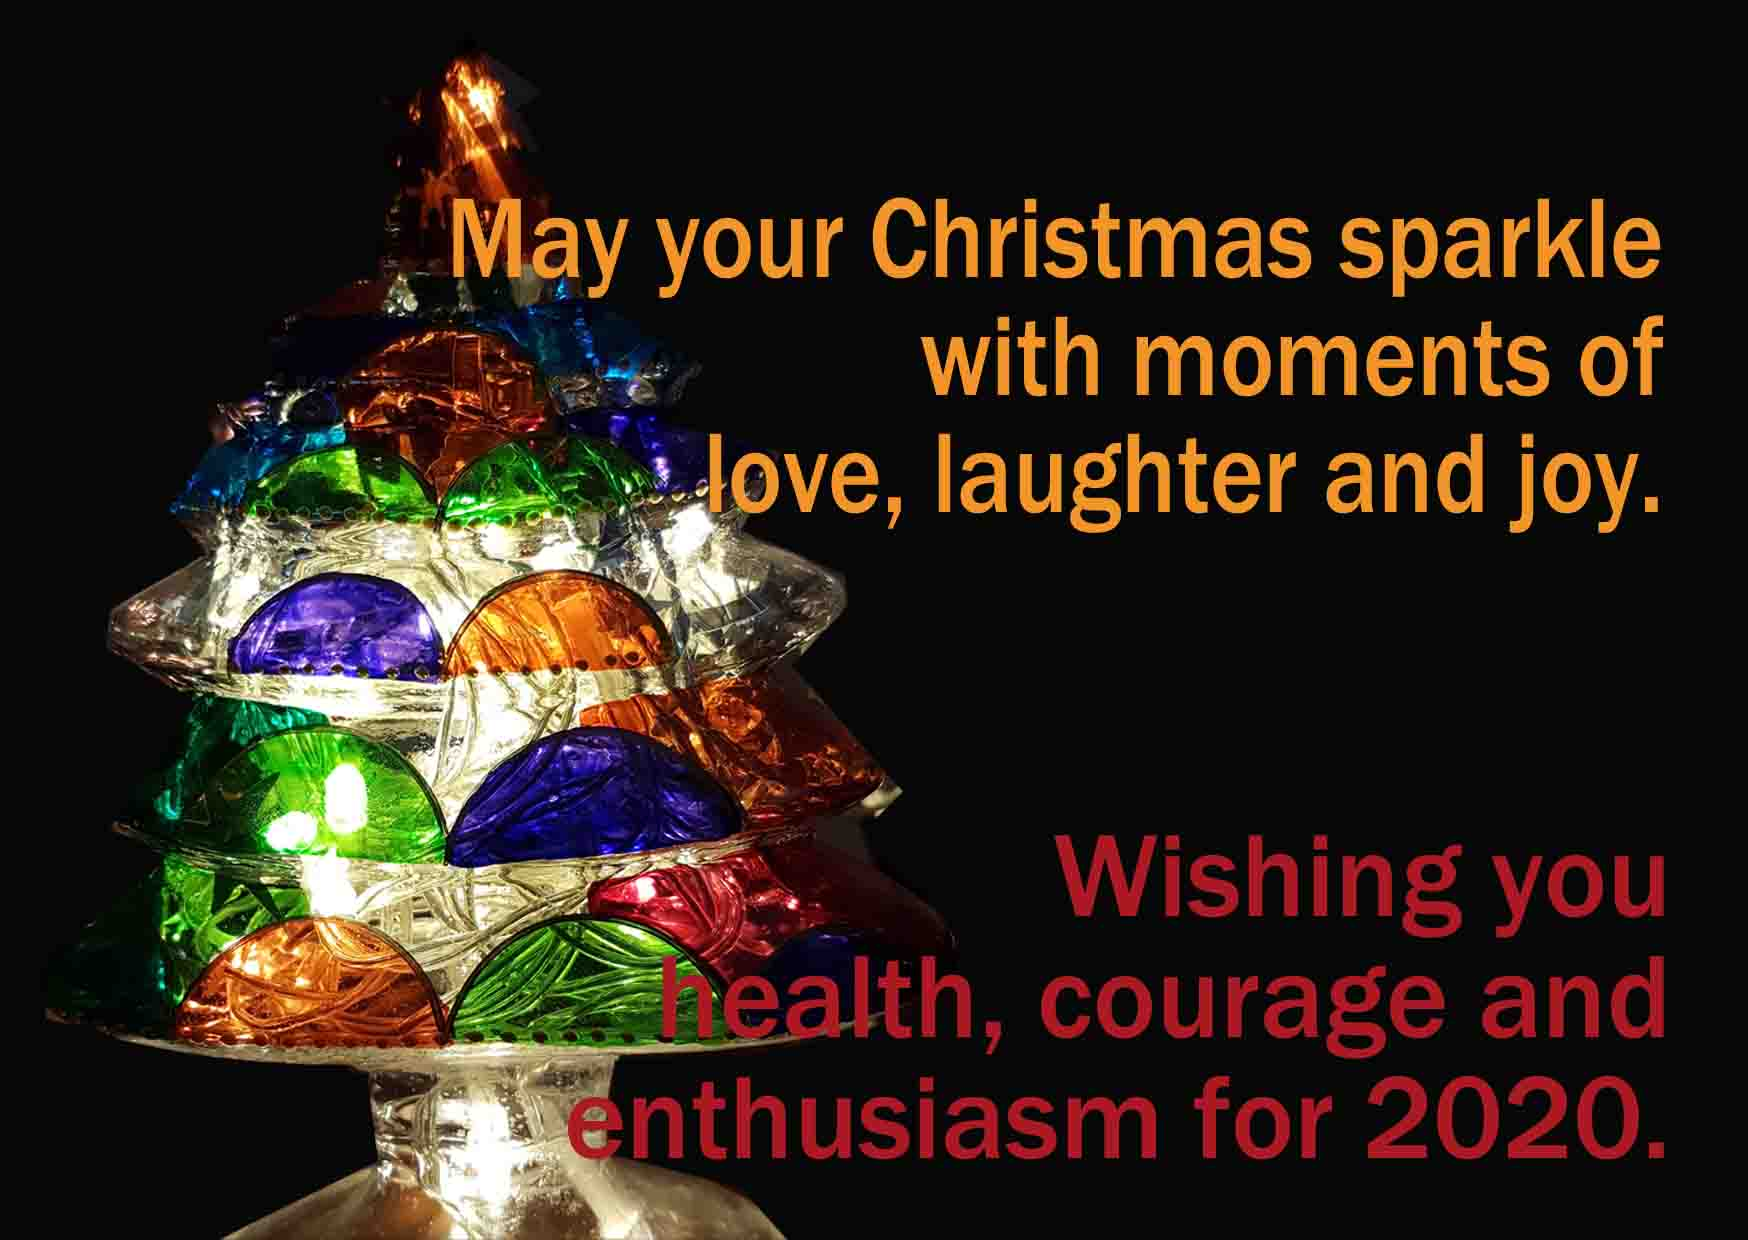 May your Christmas sparkle with moments of love, laughter and joy.